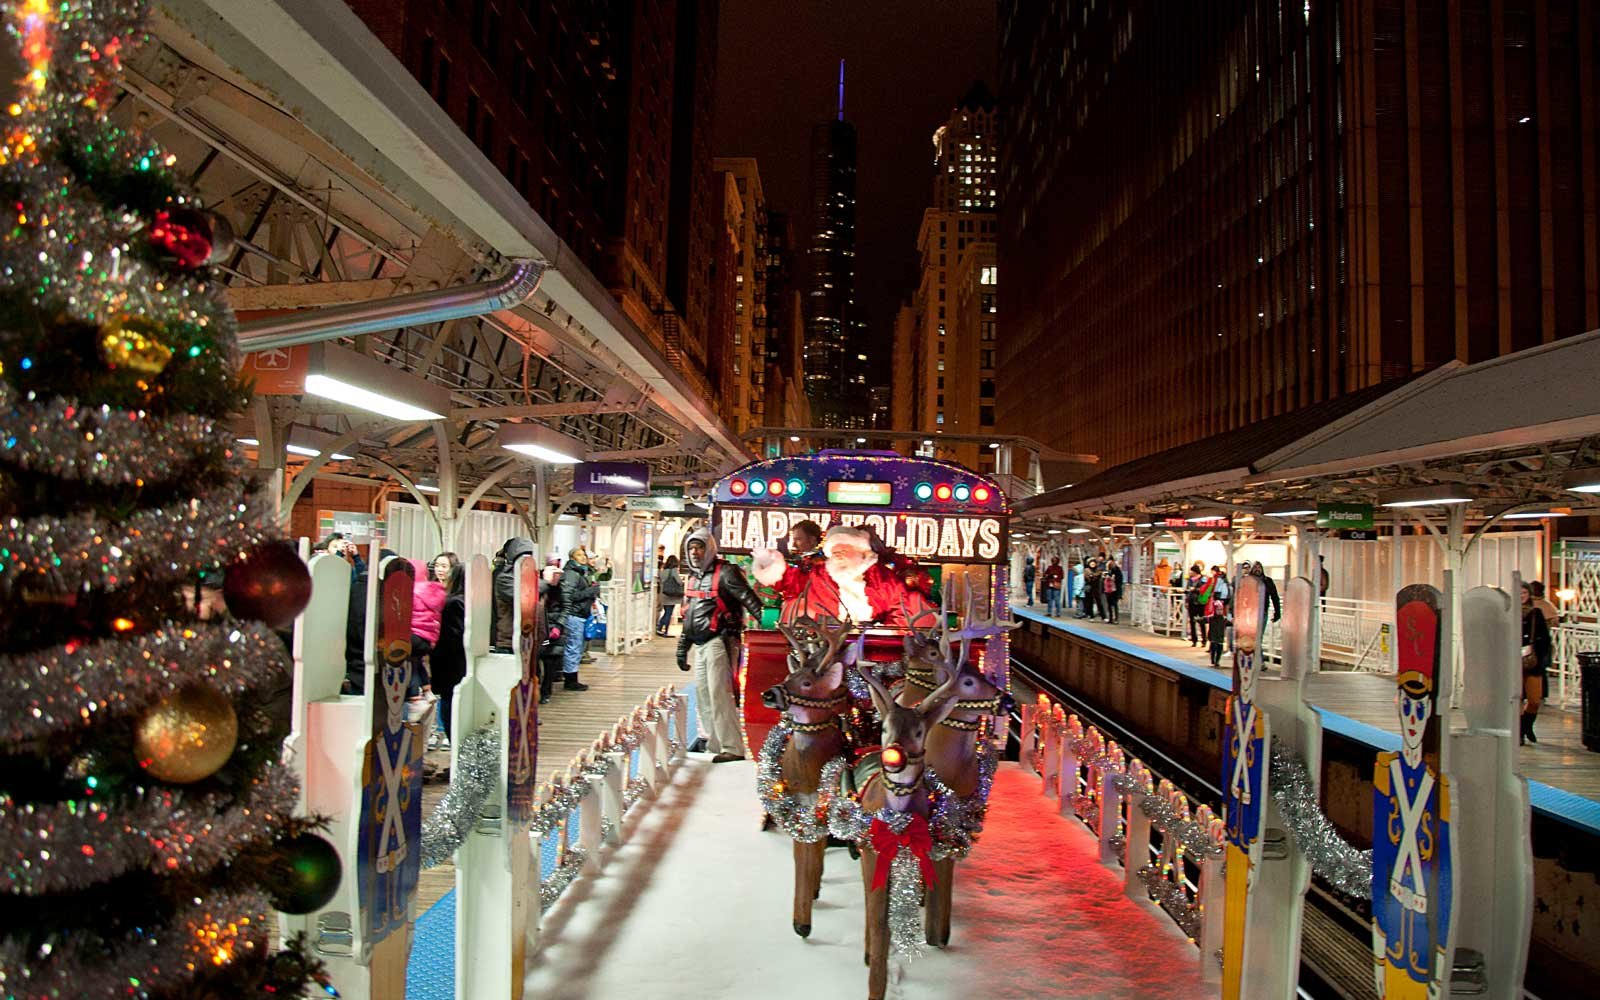 Each year, the Chicago Transit Authority runs its decorated Holiday Train on each of its eight rail lines from after Thanksgiving until right before Christmas Day.